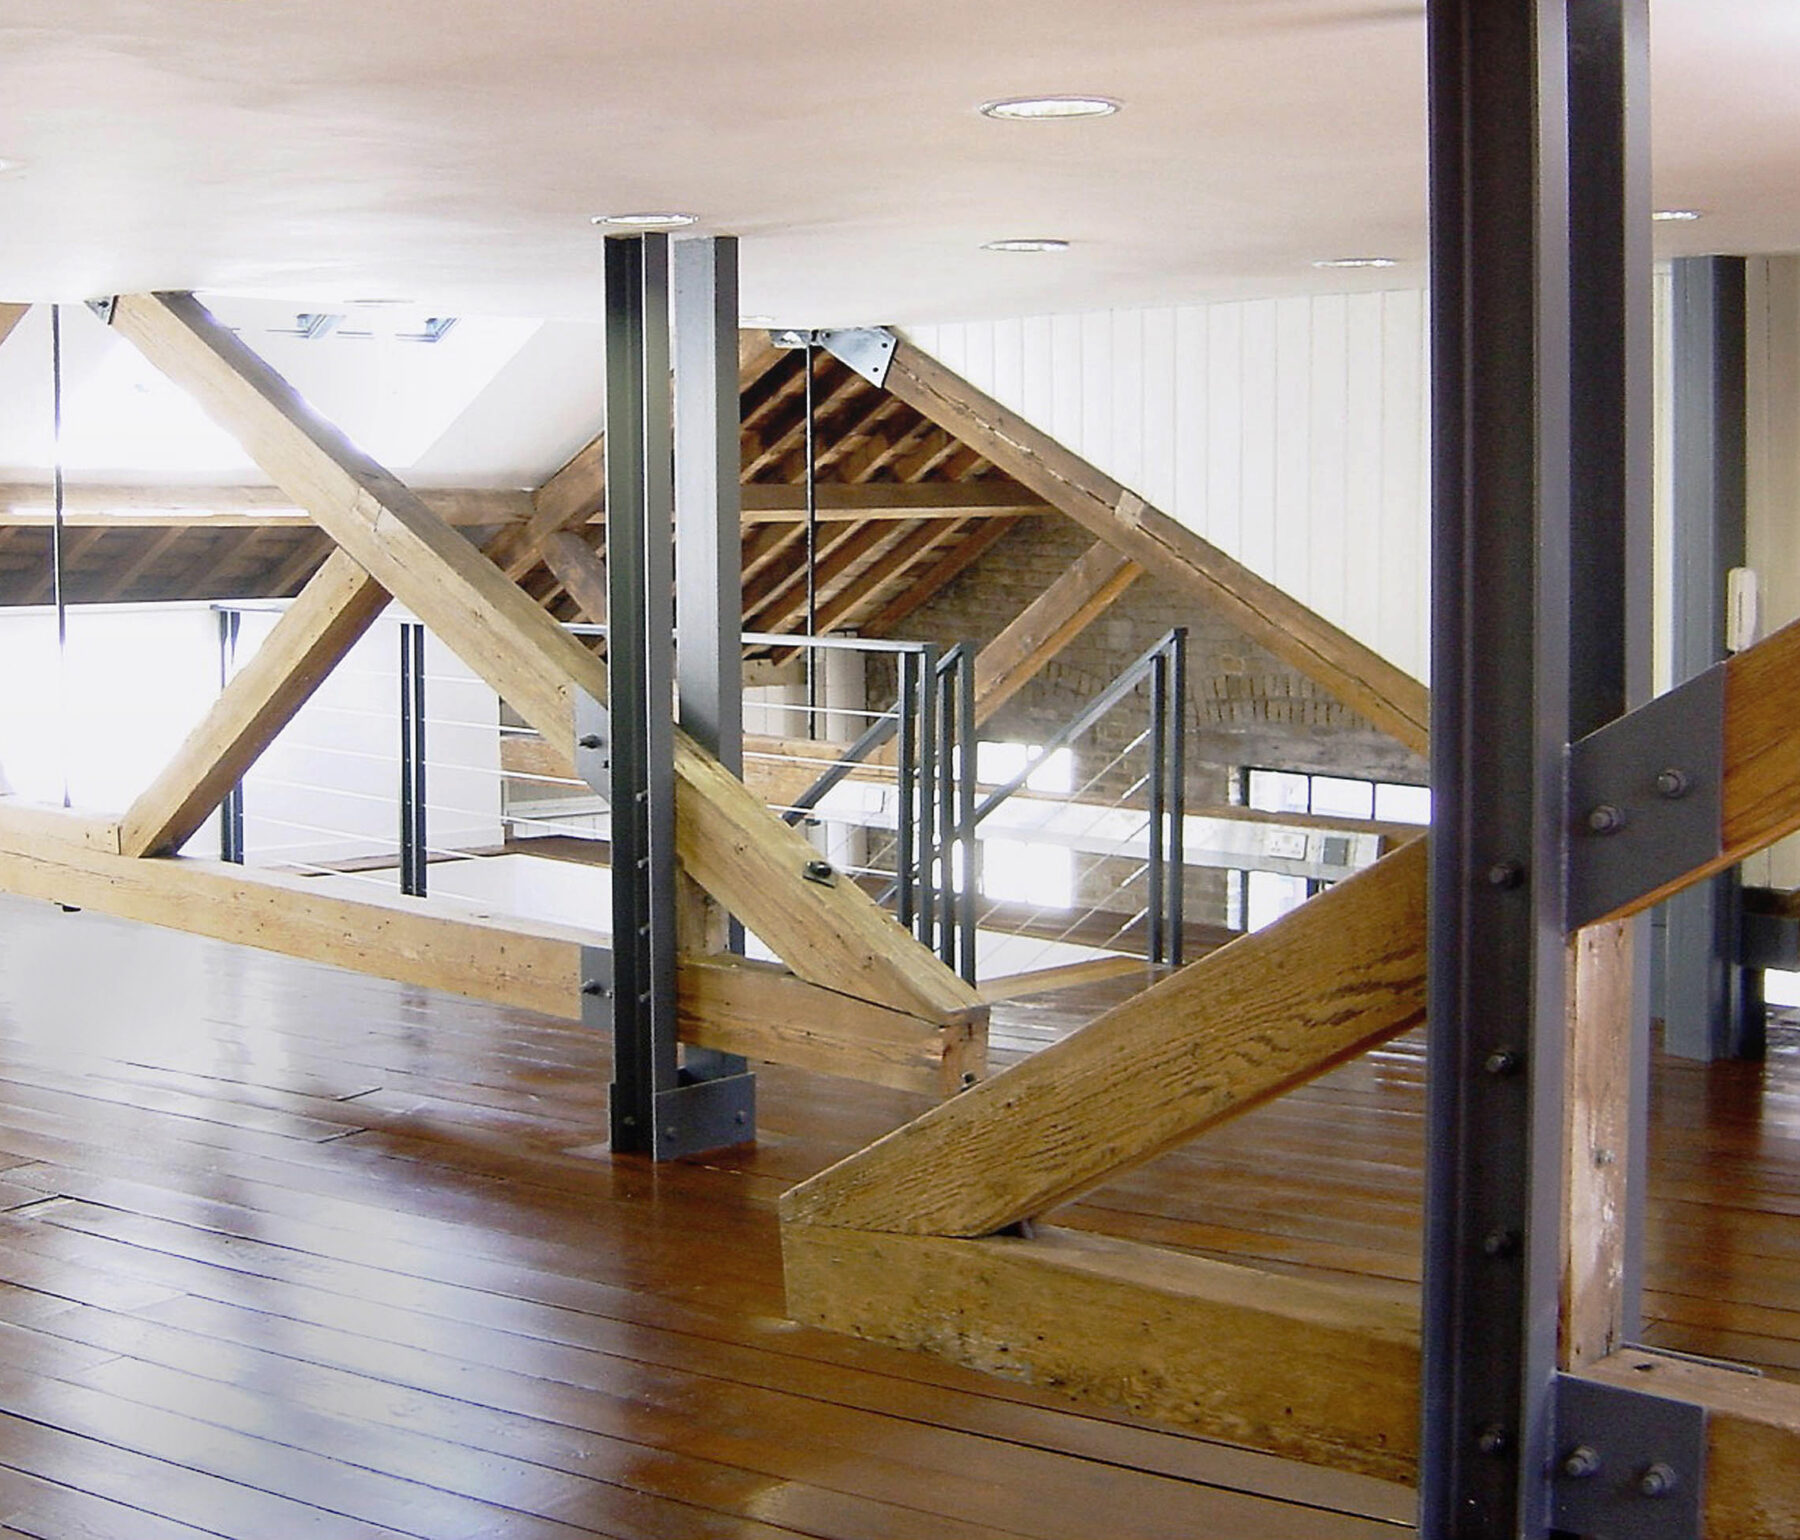 50-52 Commercial Street 01 Internal Roof Extension Exposed truss Conservation